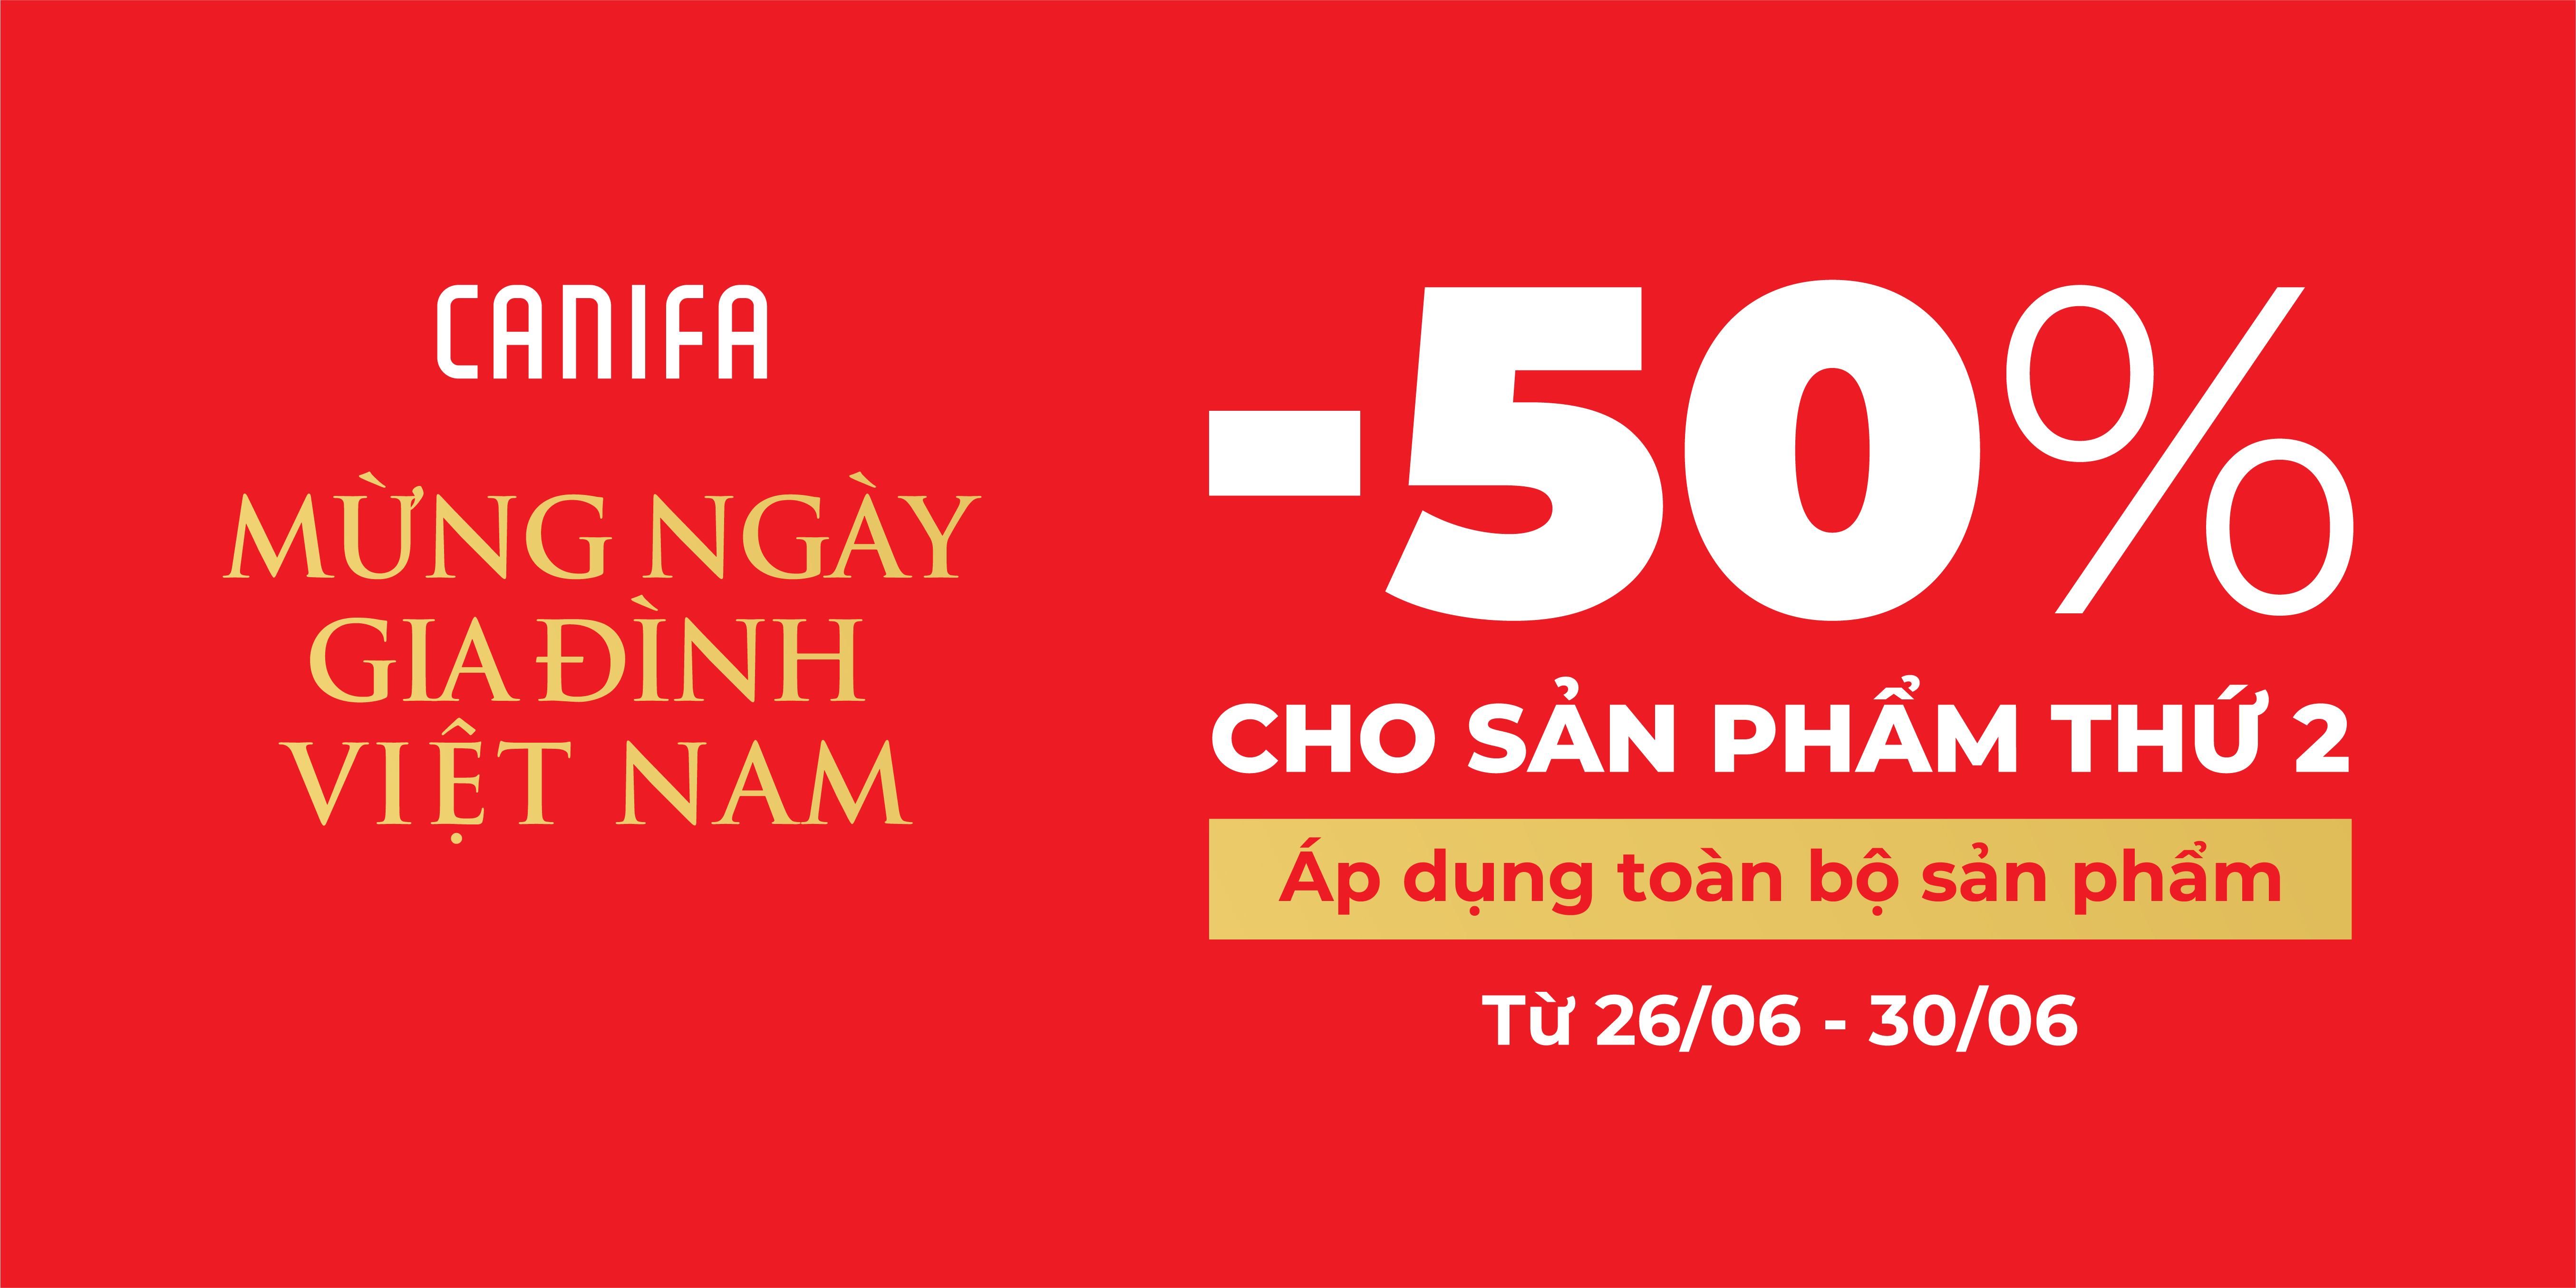 canifa-chao-mung-ngay-gia-dinh-viet-nam